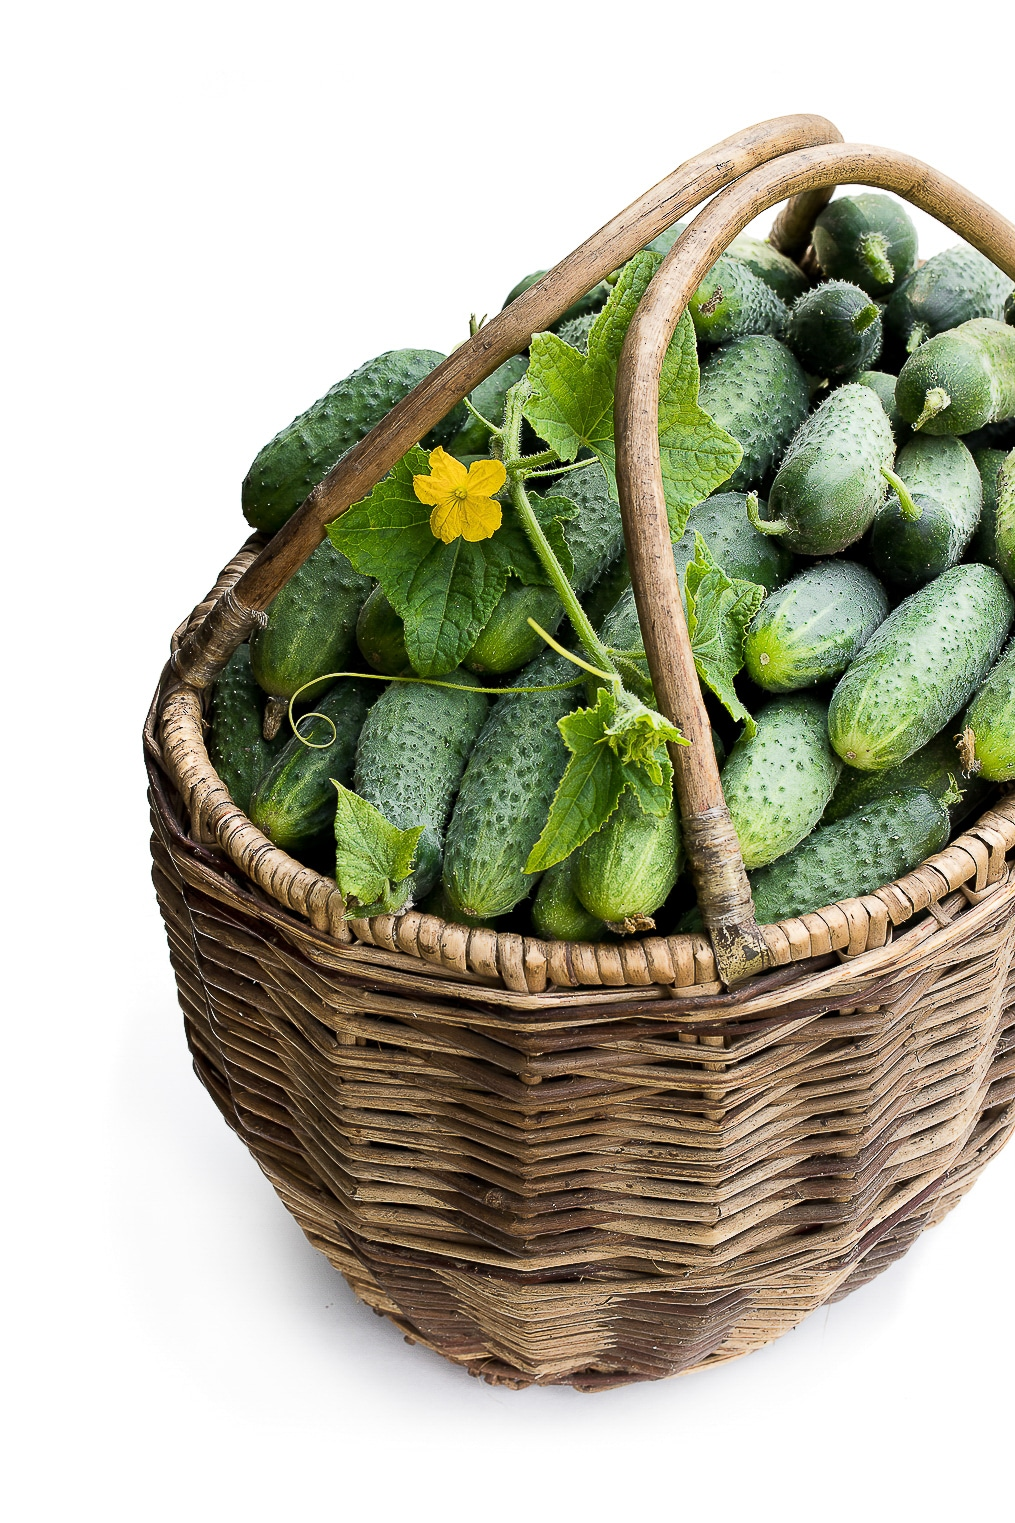 Freshly harvested cucumbers in a basket.